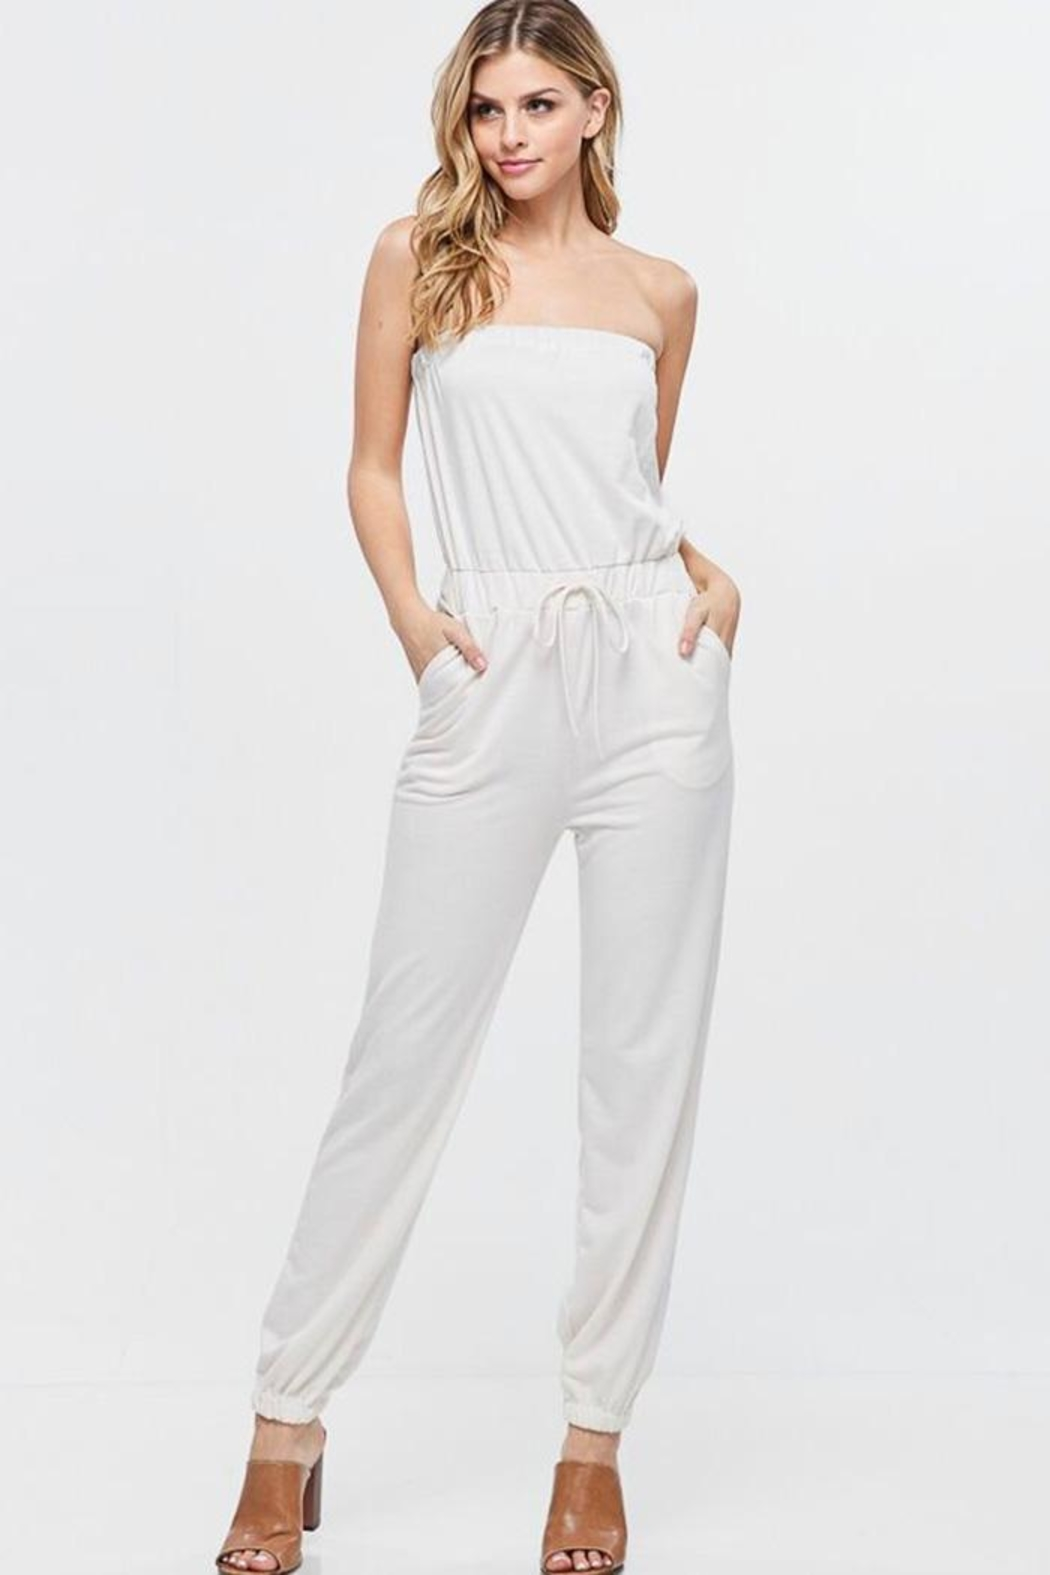 72eb1c33f5c Jolie Sweat Jumpsuit from New York by Dor L Dor — Shoptiques